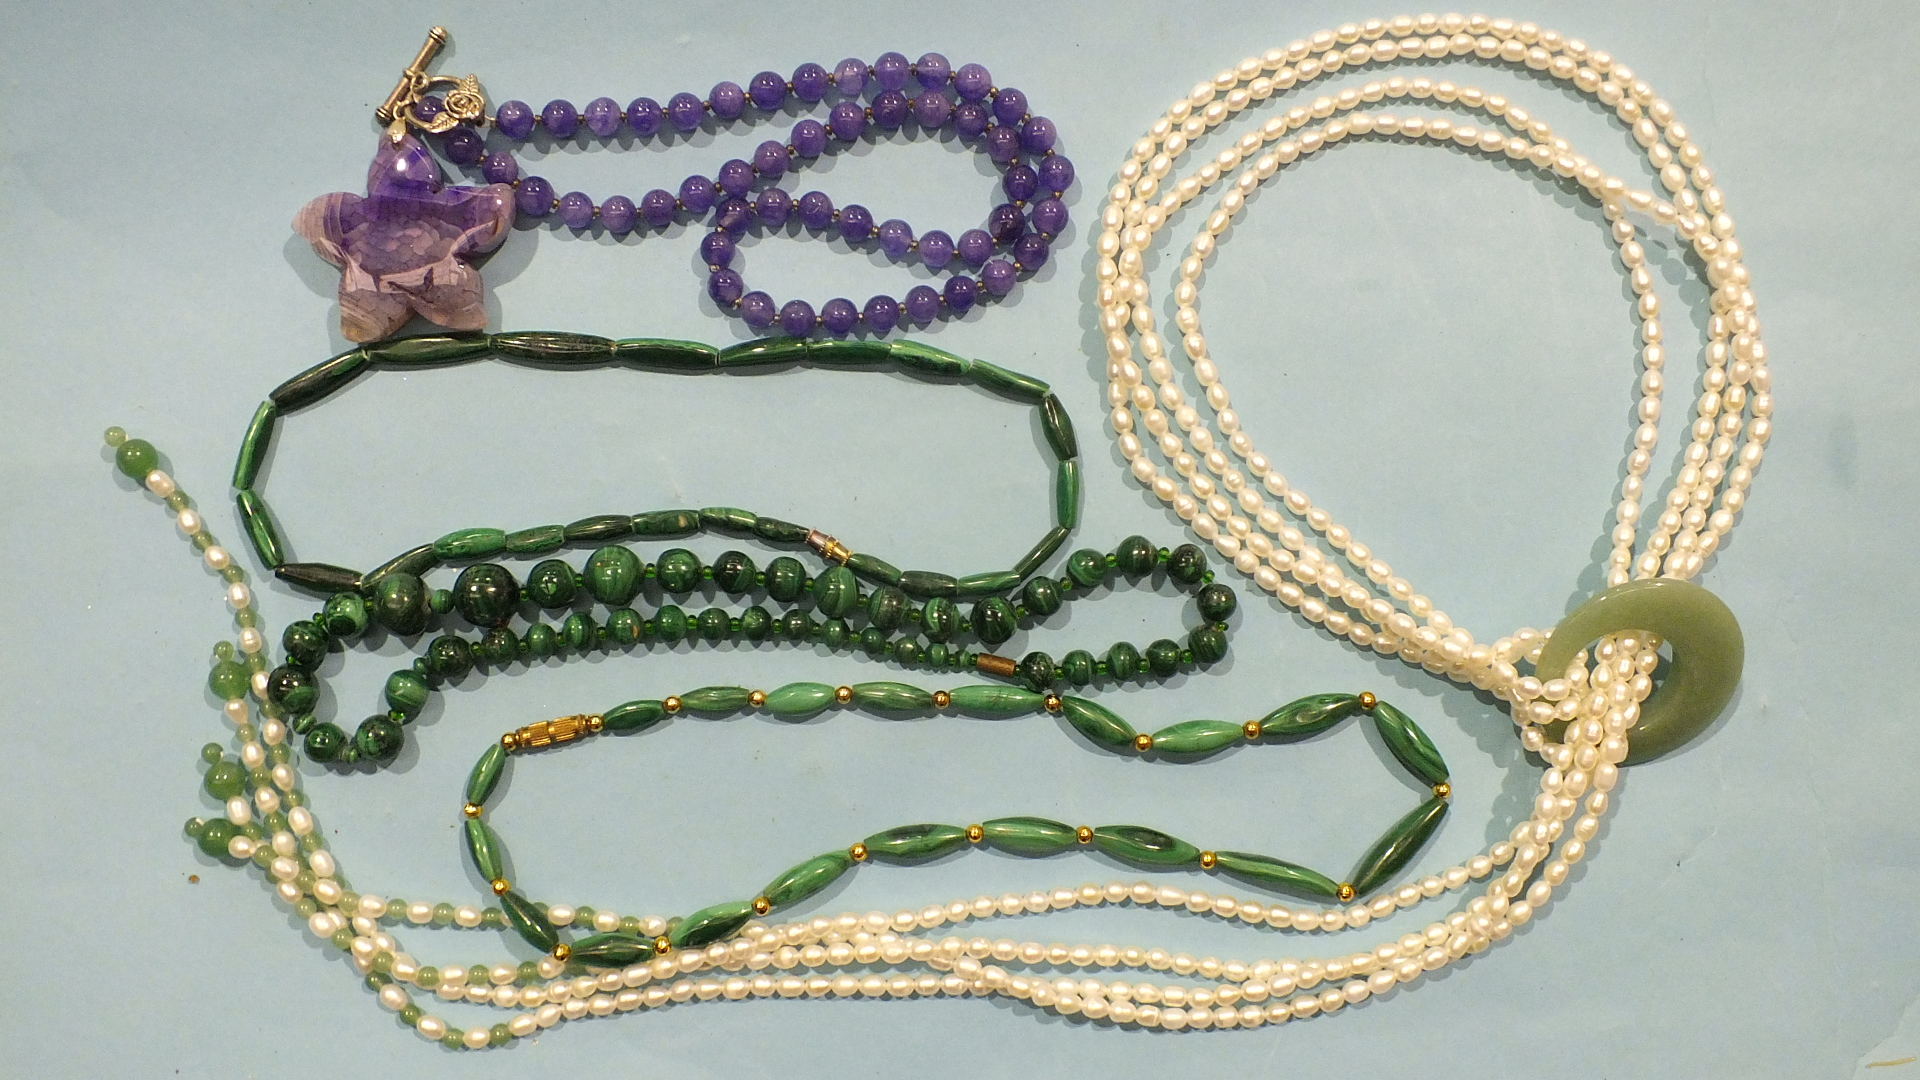 Lot 197 - A necklace of freshwater pearls and aventurine quartz, three strings of malachite beads and an agate